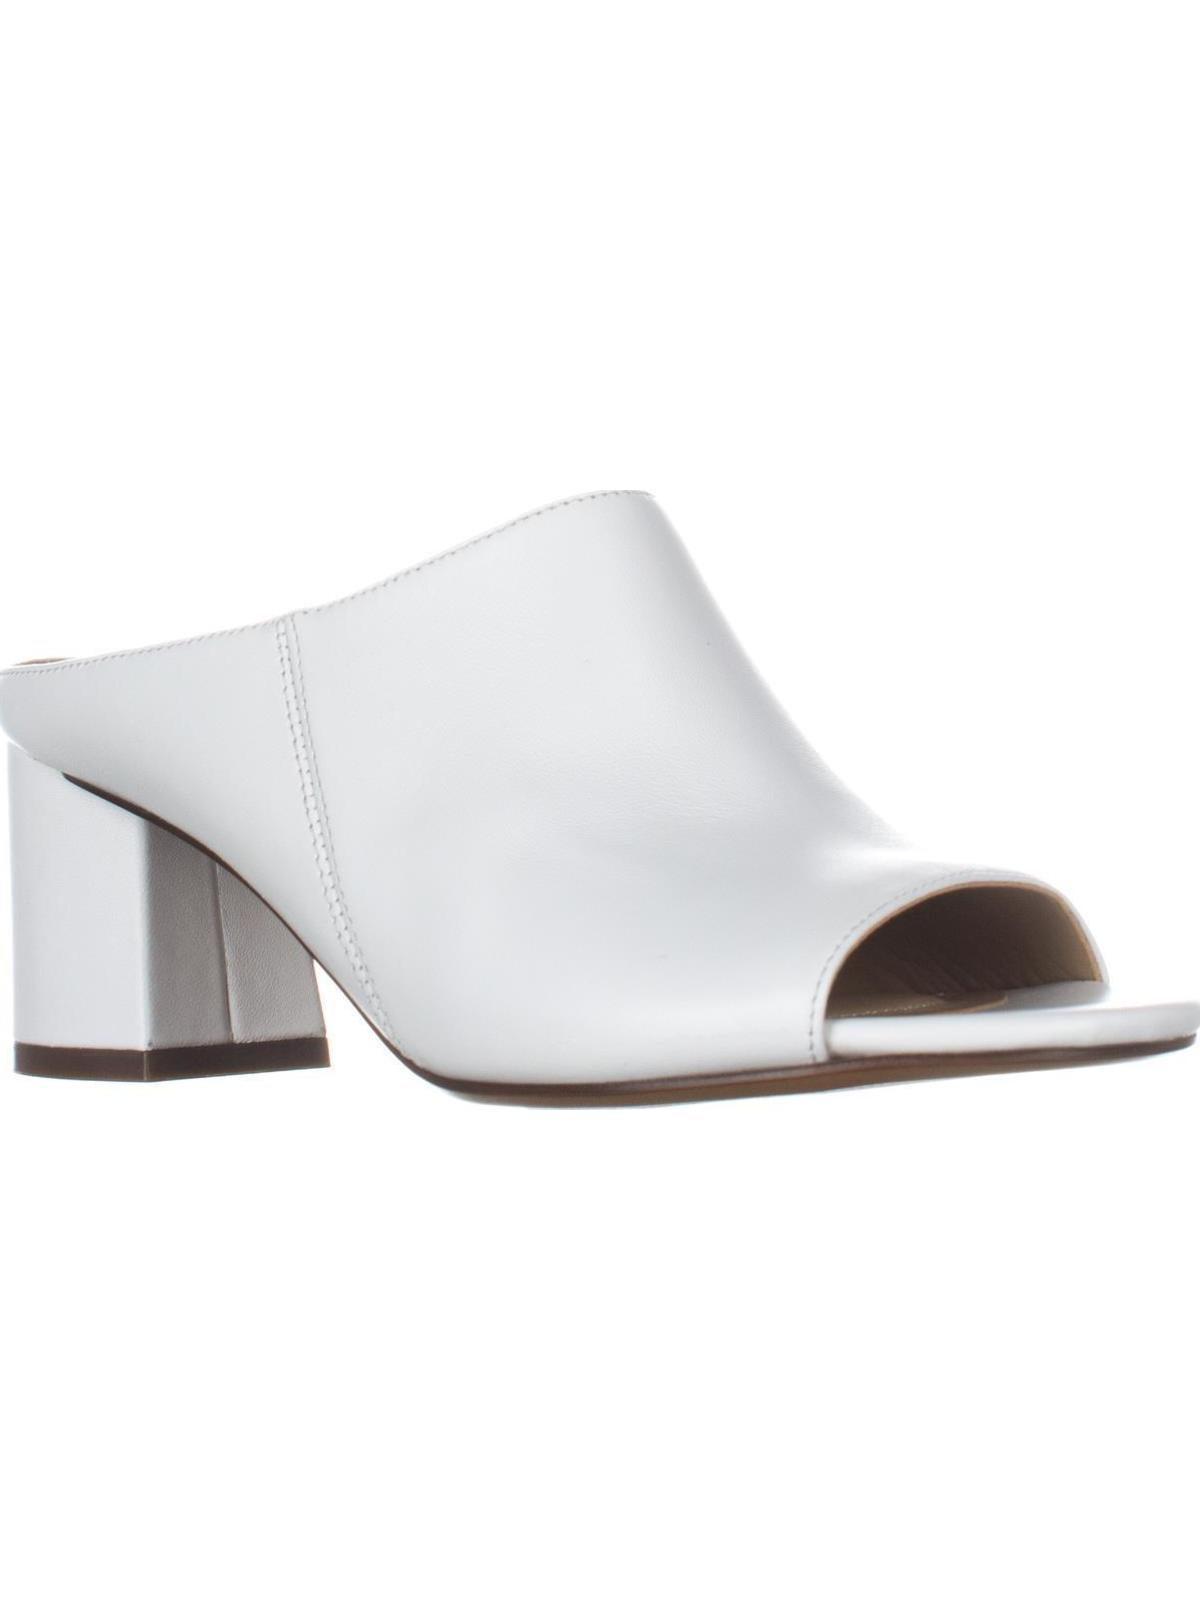 Womens Naturalizer Cyprine Slide Mule Peep Toe Sandals, White by Naturalizer